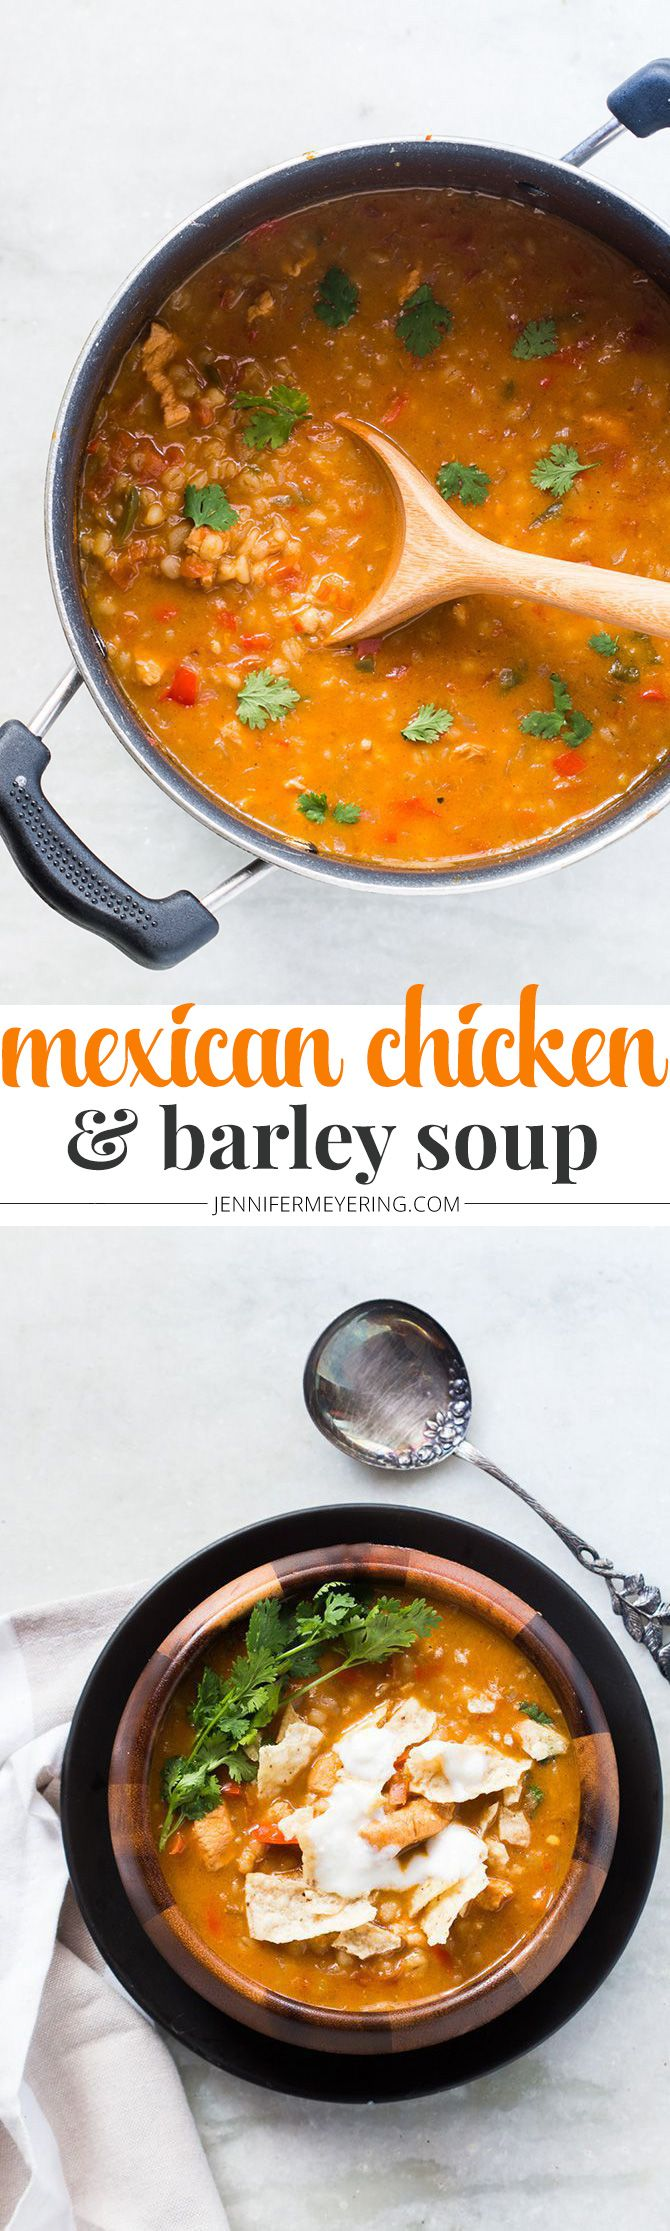 Mexican Chicken and Barley Soup - JenniferMeyering.com